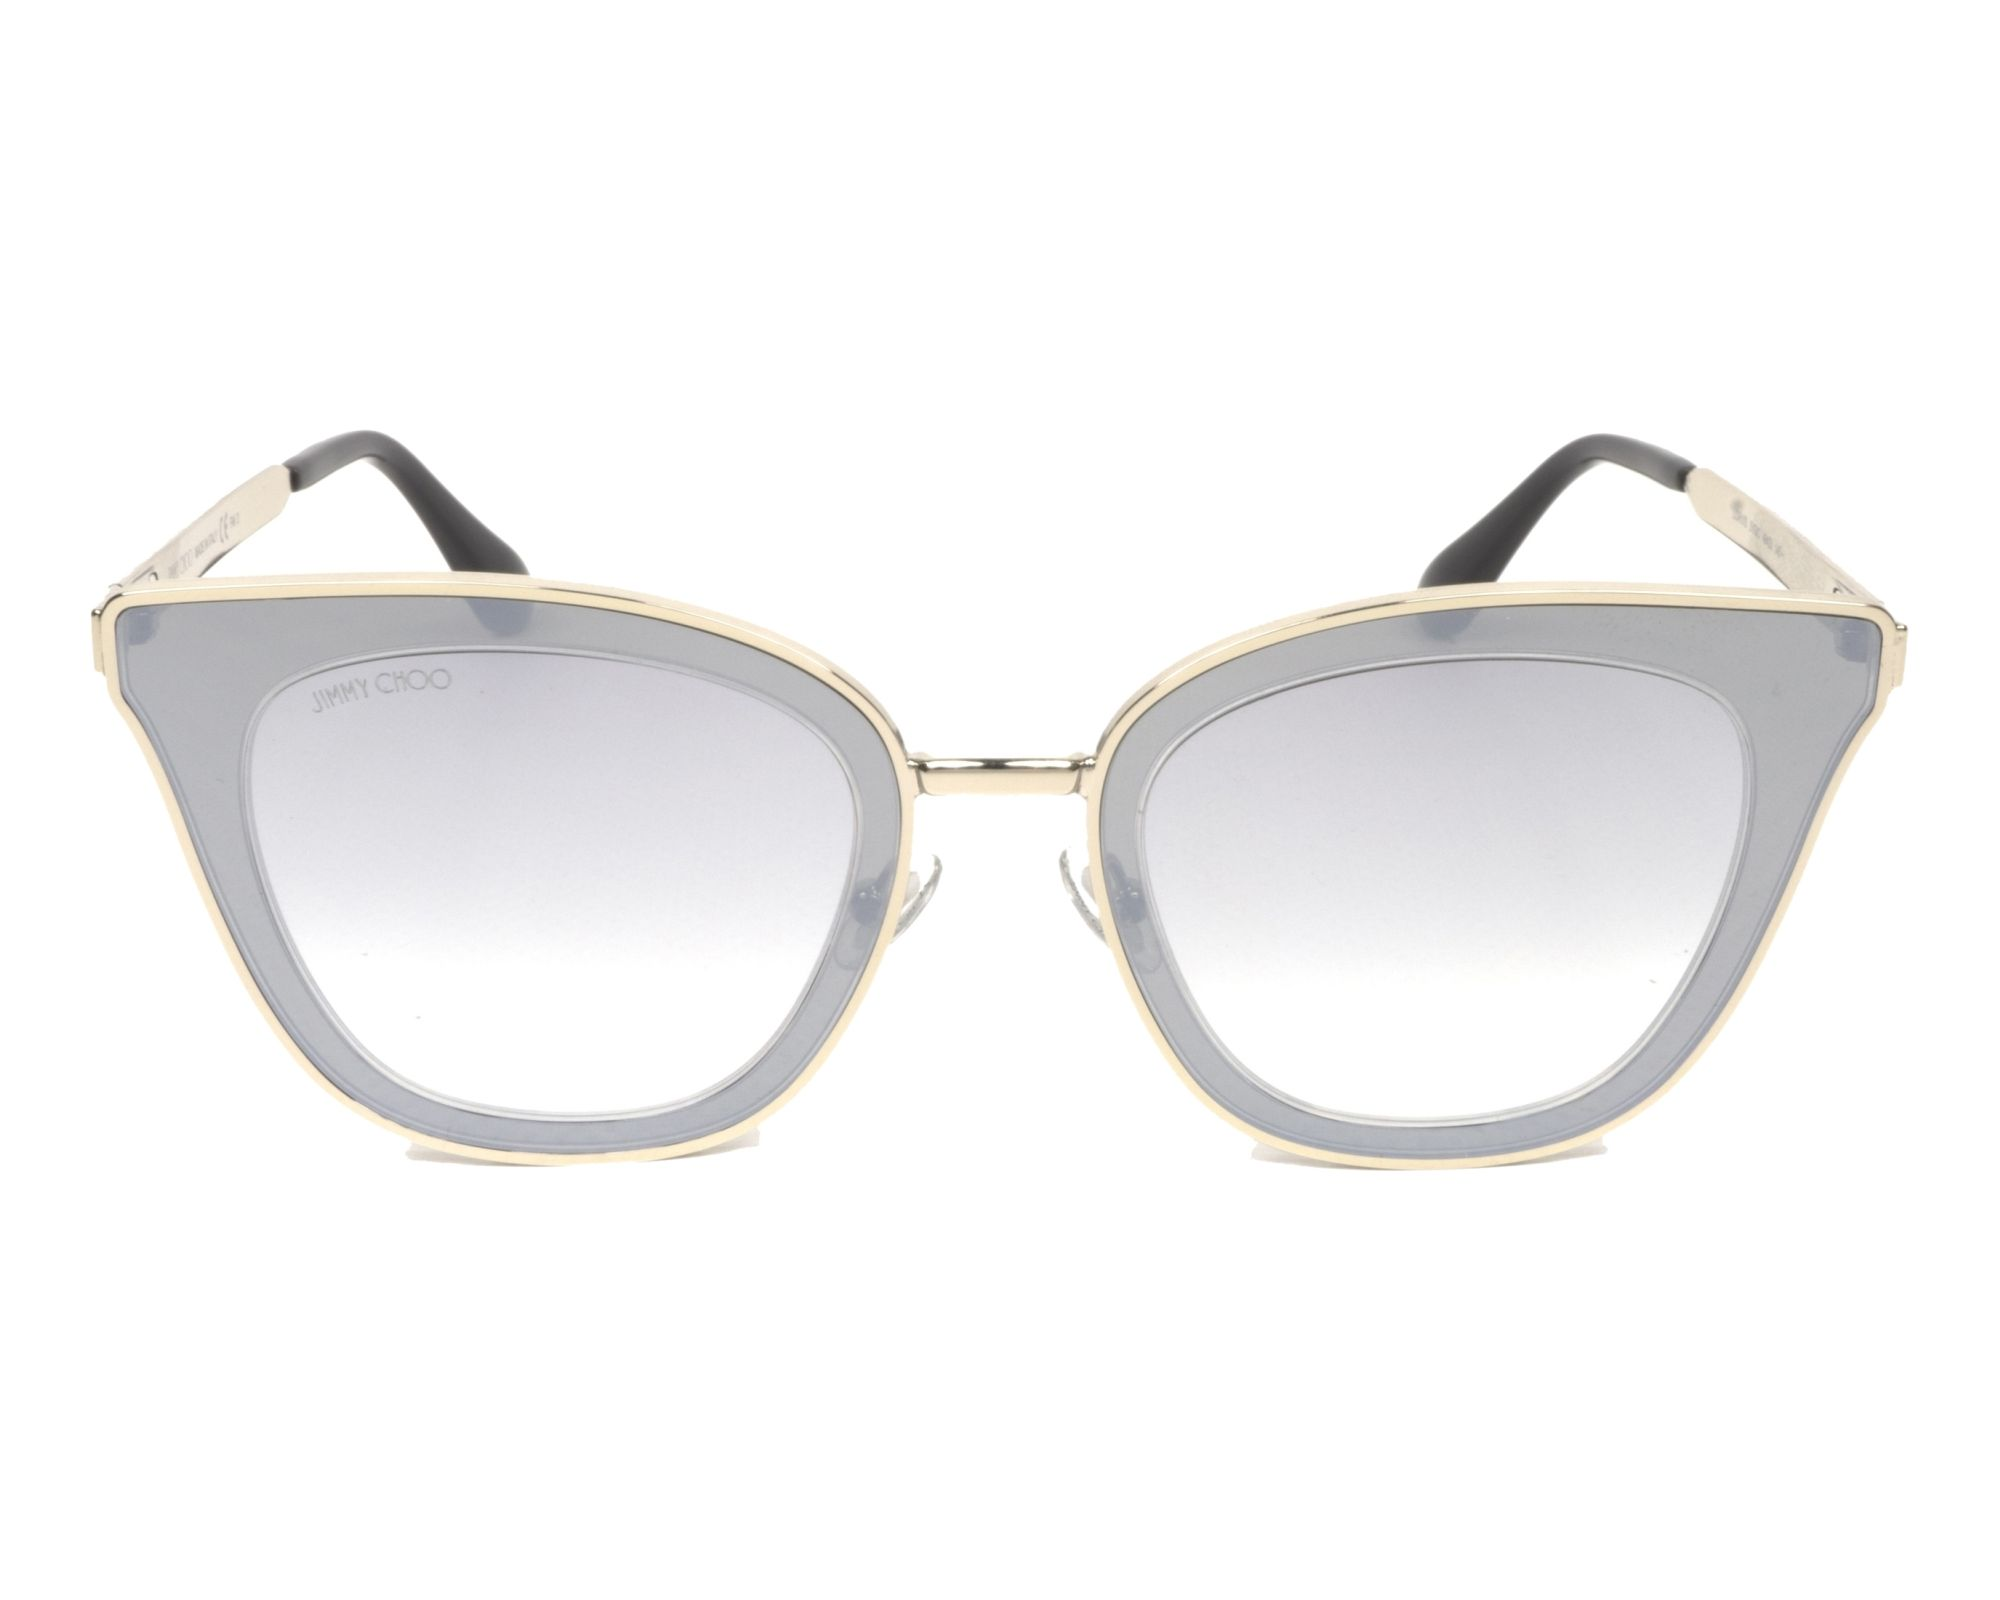 980a56f29f0d Sunglasses Jimmy Choo LORY-S 3YG/IC 49-23 Silver Silver front view